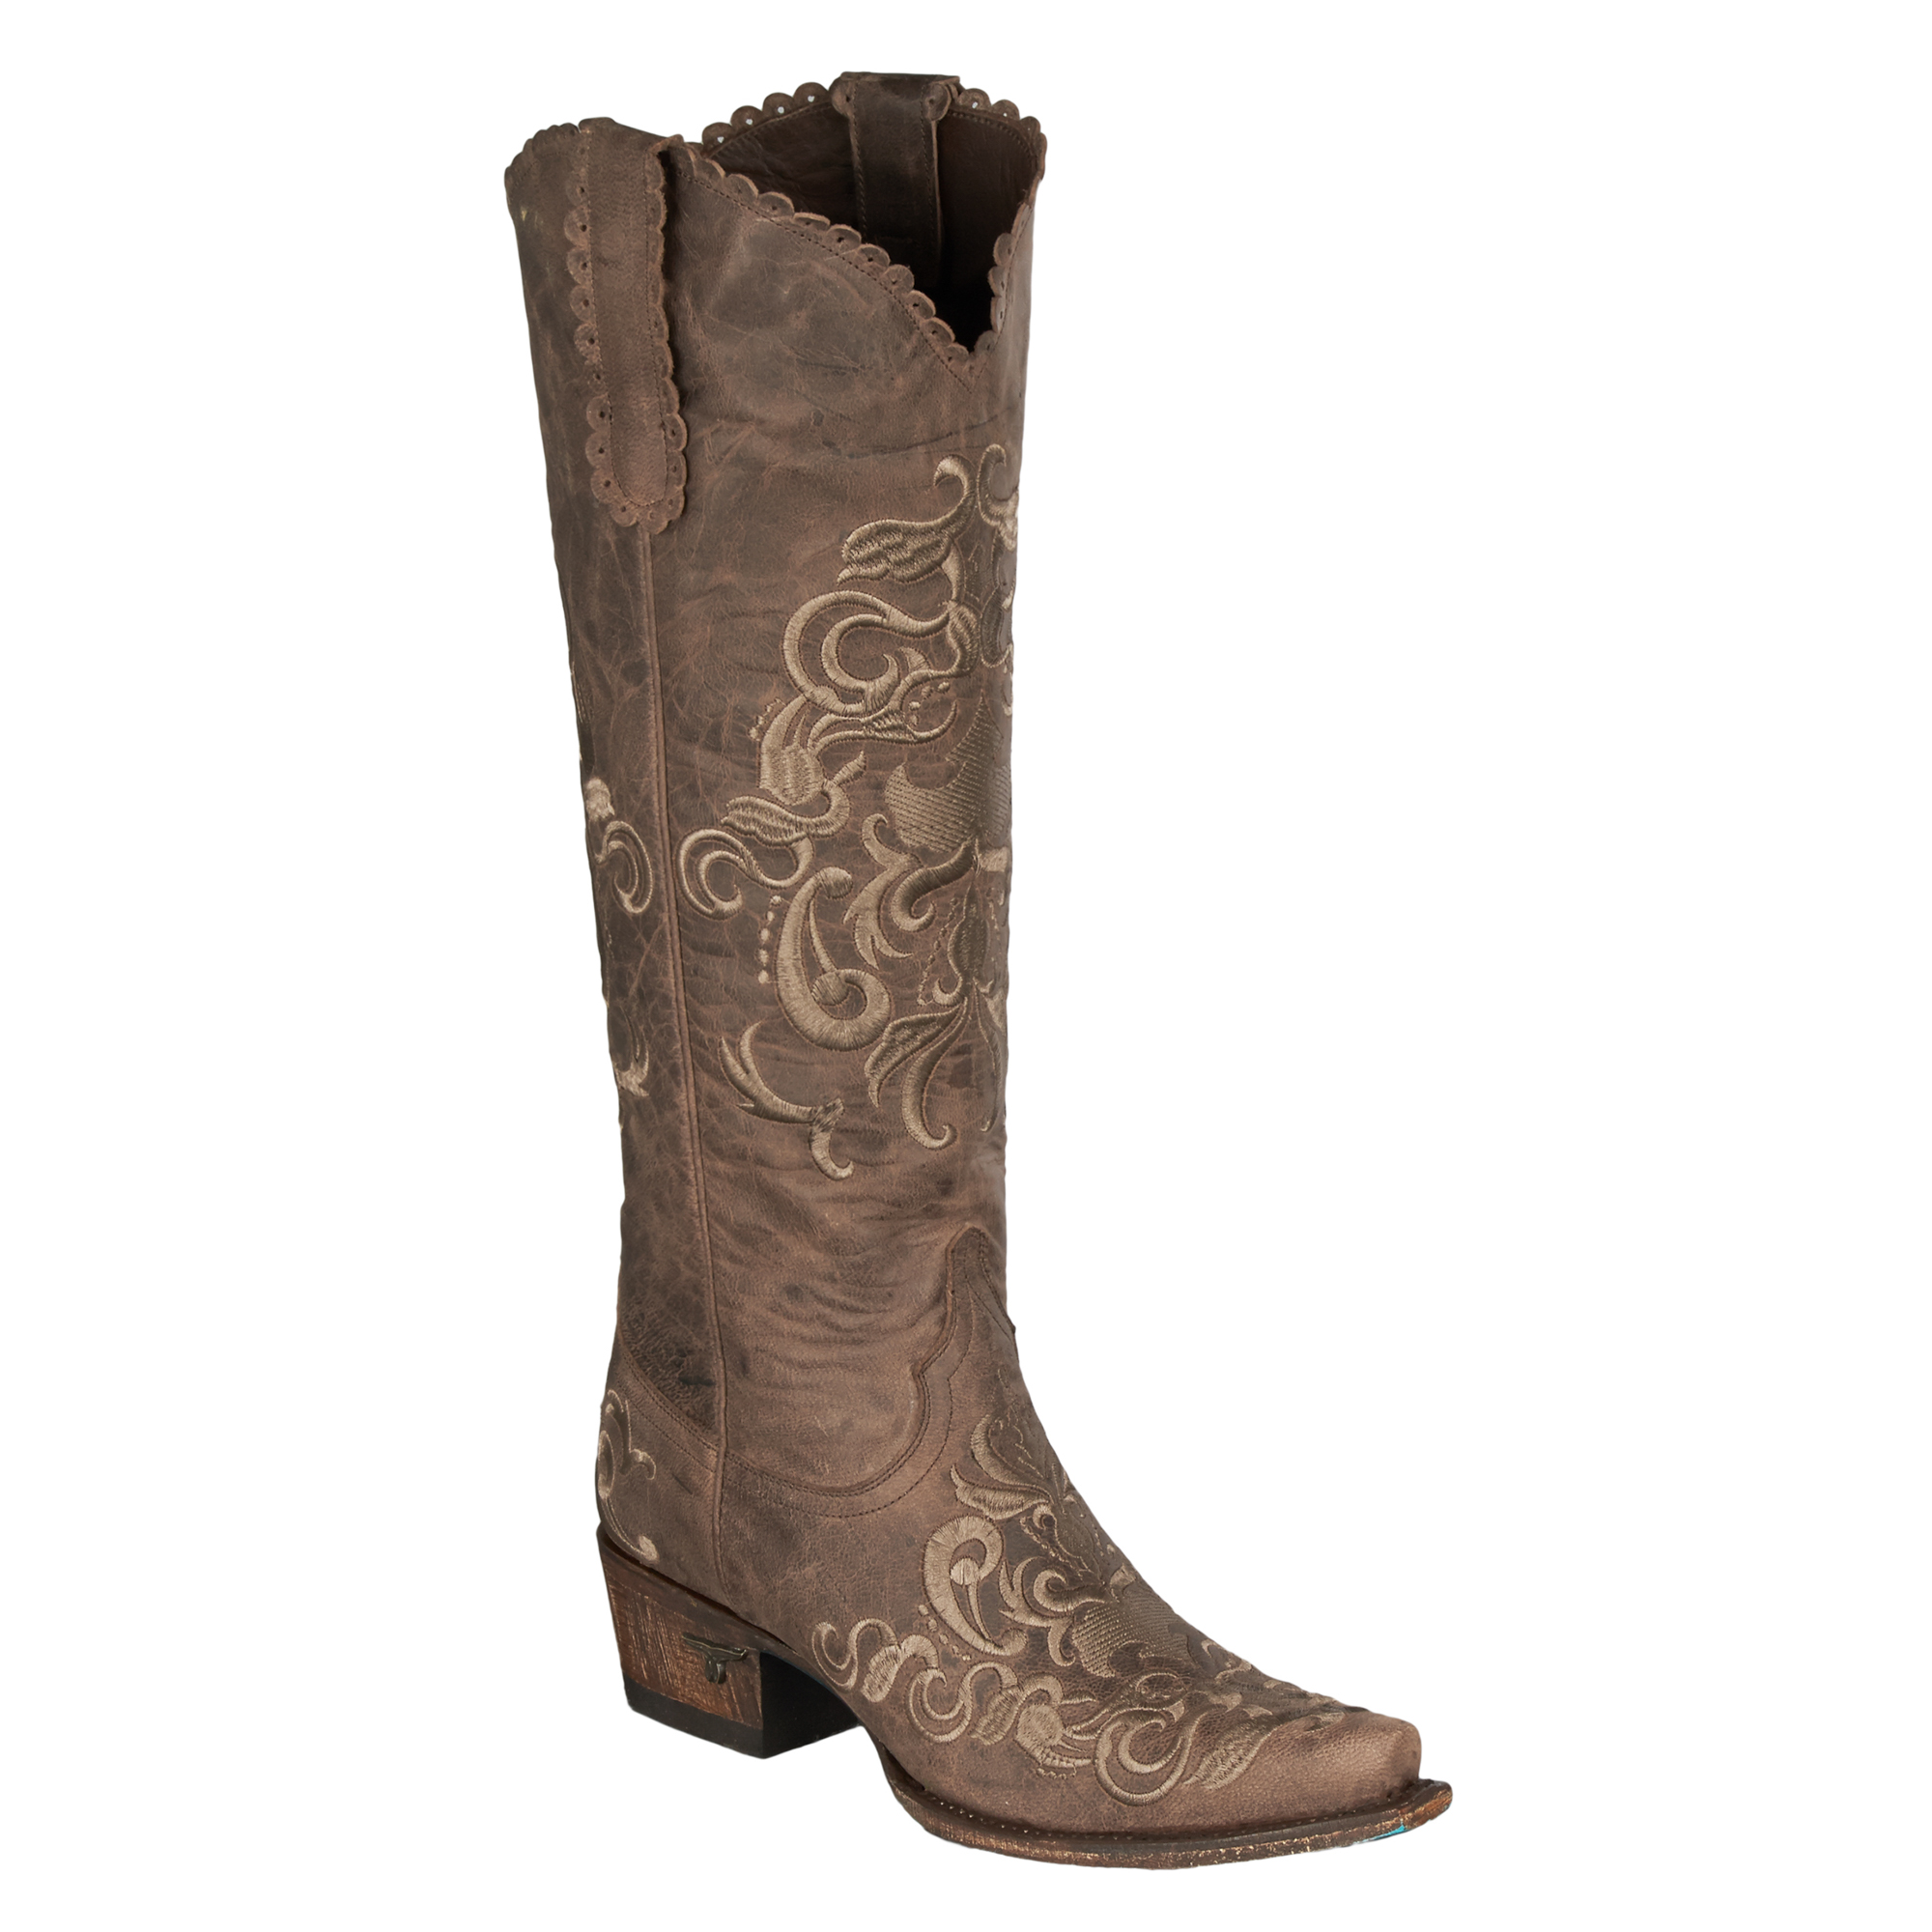 boots womens leather embroidered brown